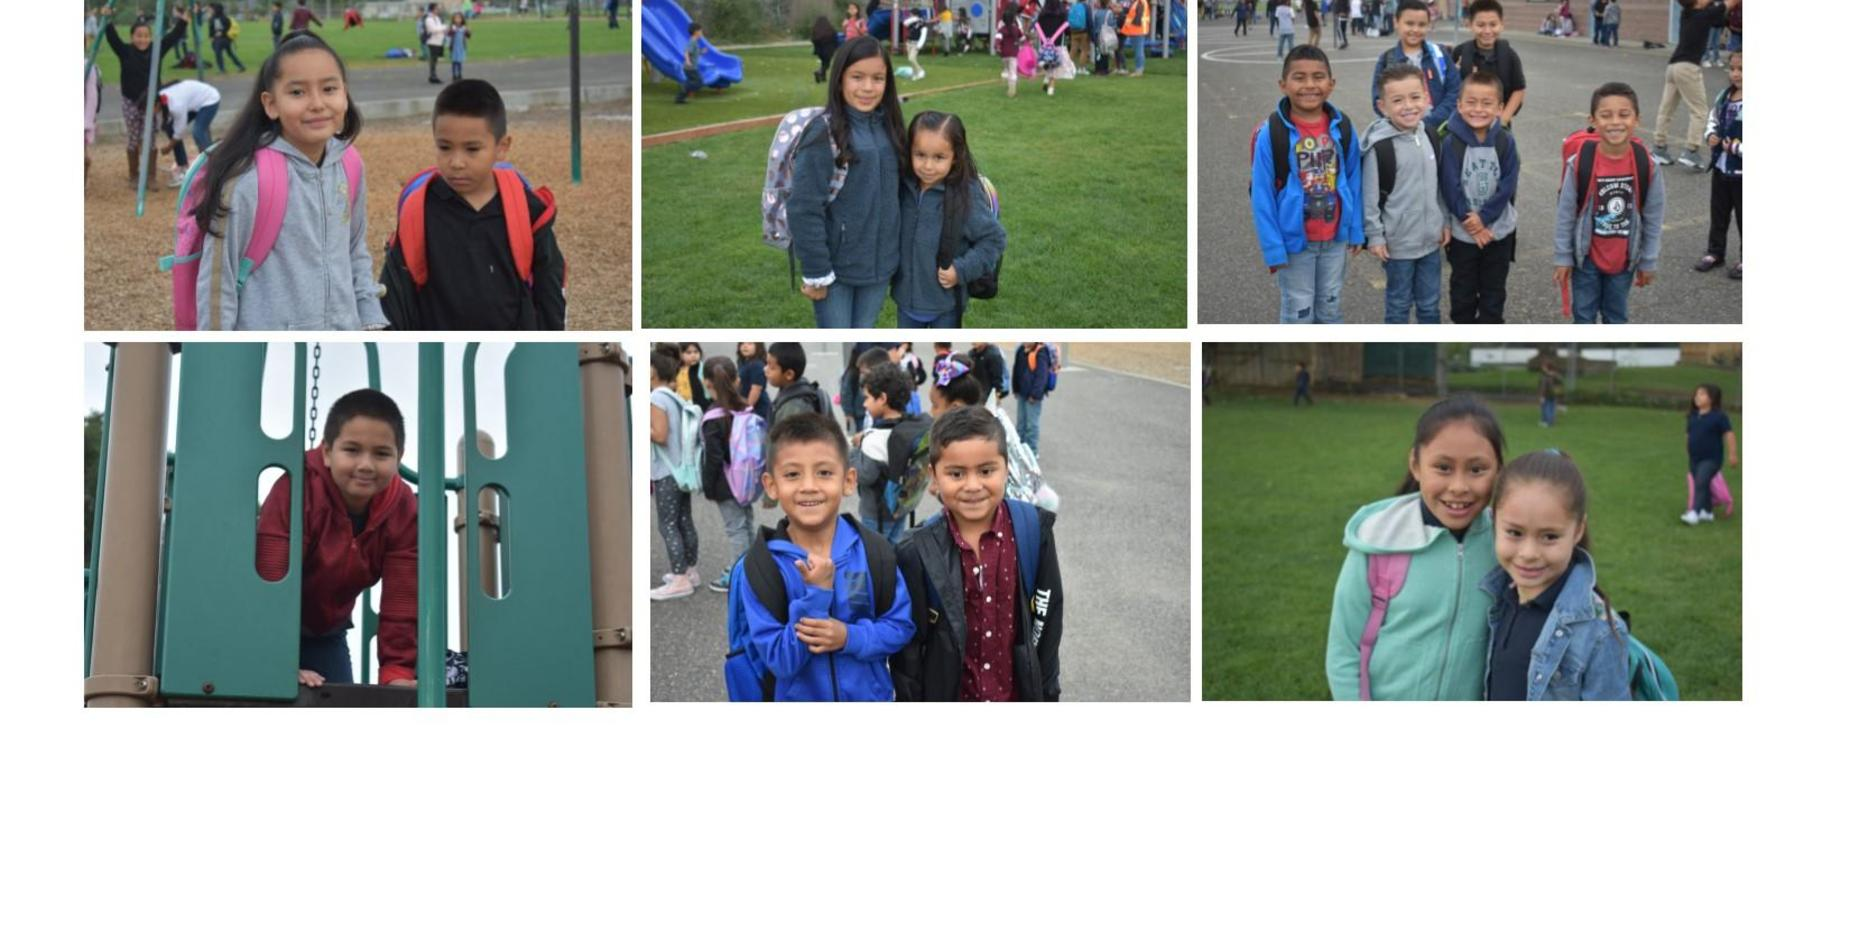 6 pictures of smiling students on the playground waiting for the bell to ring!  All smiling!